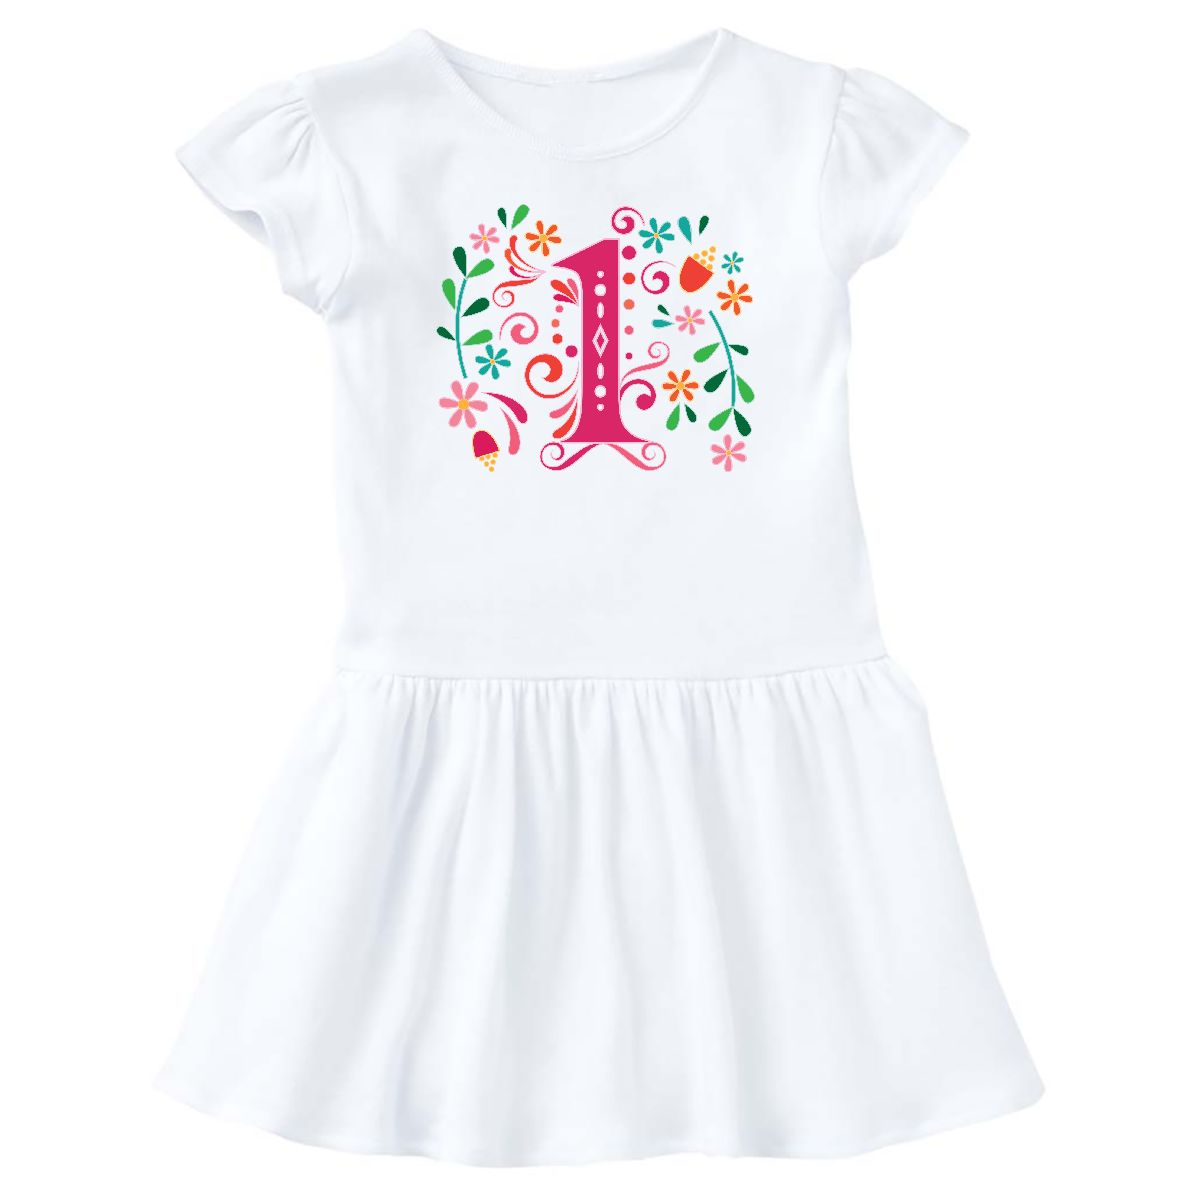 1st Birthday Party 1 Year Old Girls Infant Dress White 6 Months